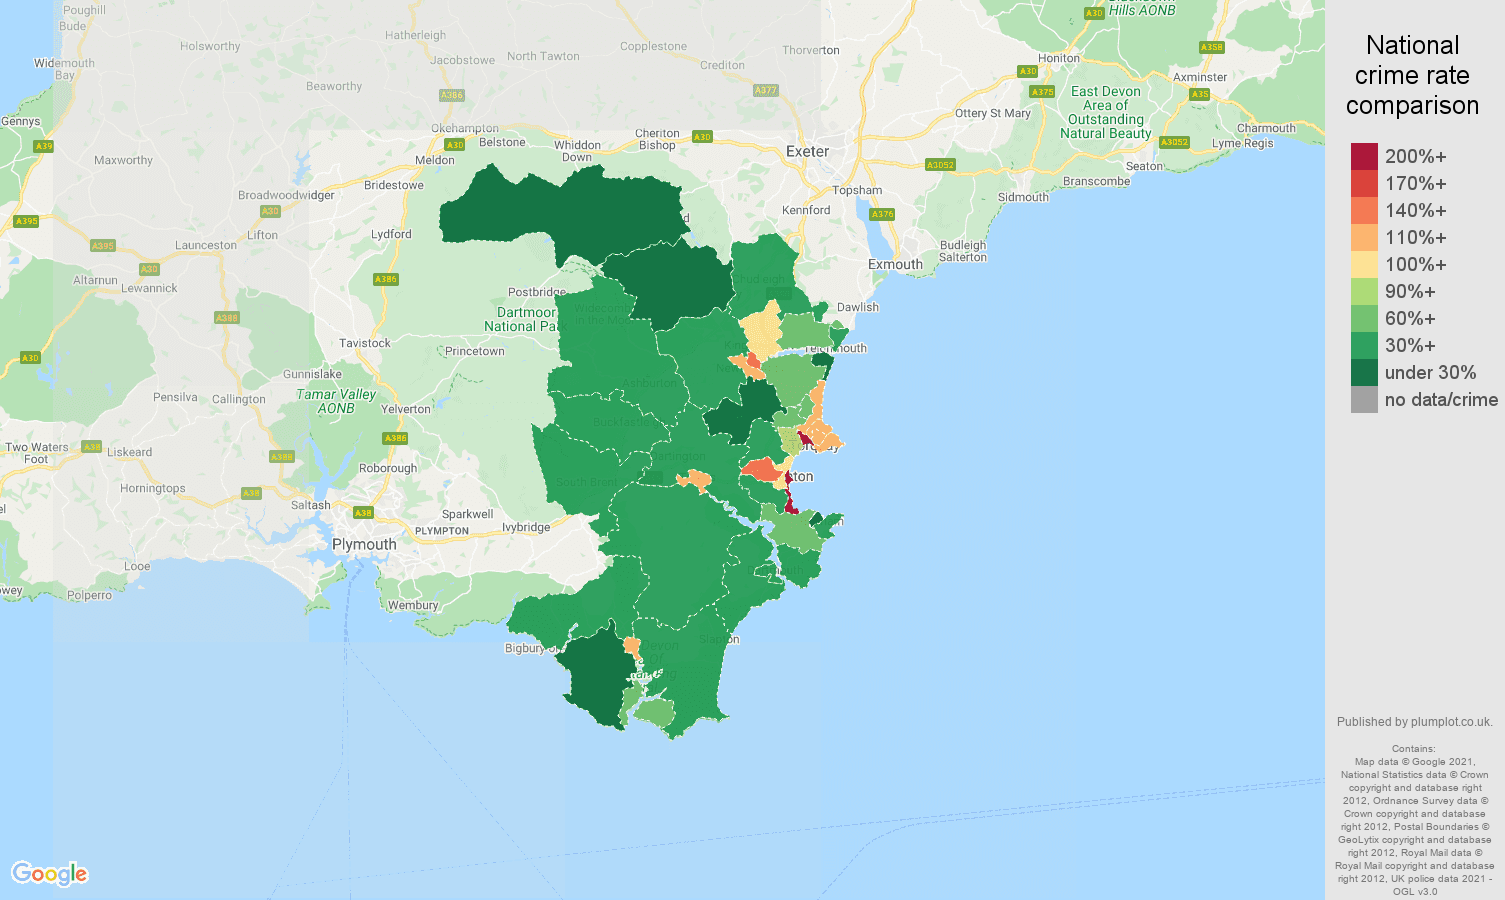 Torquay drugs crime rate comparison map